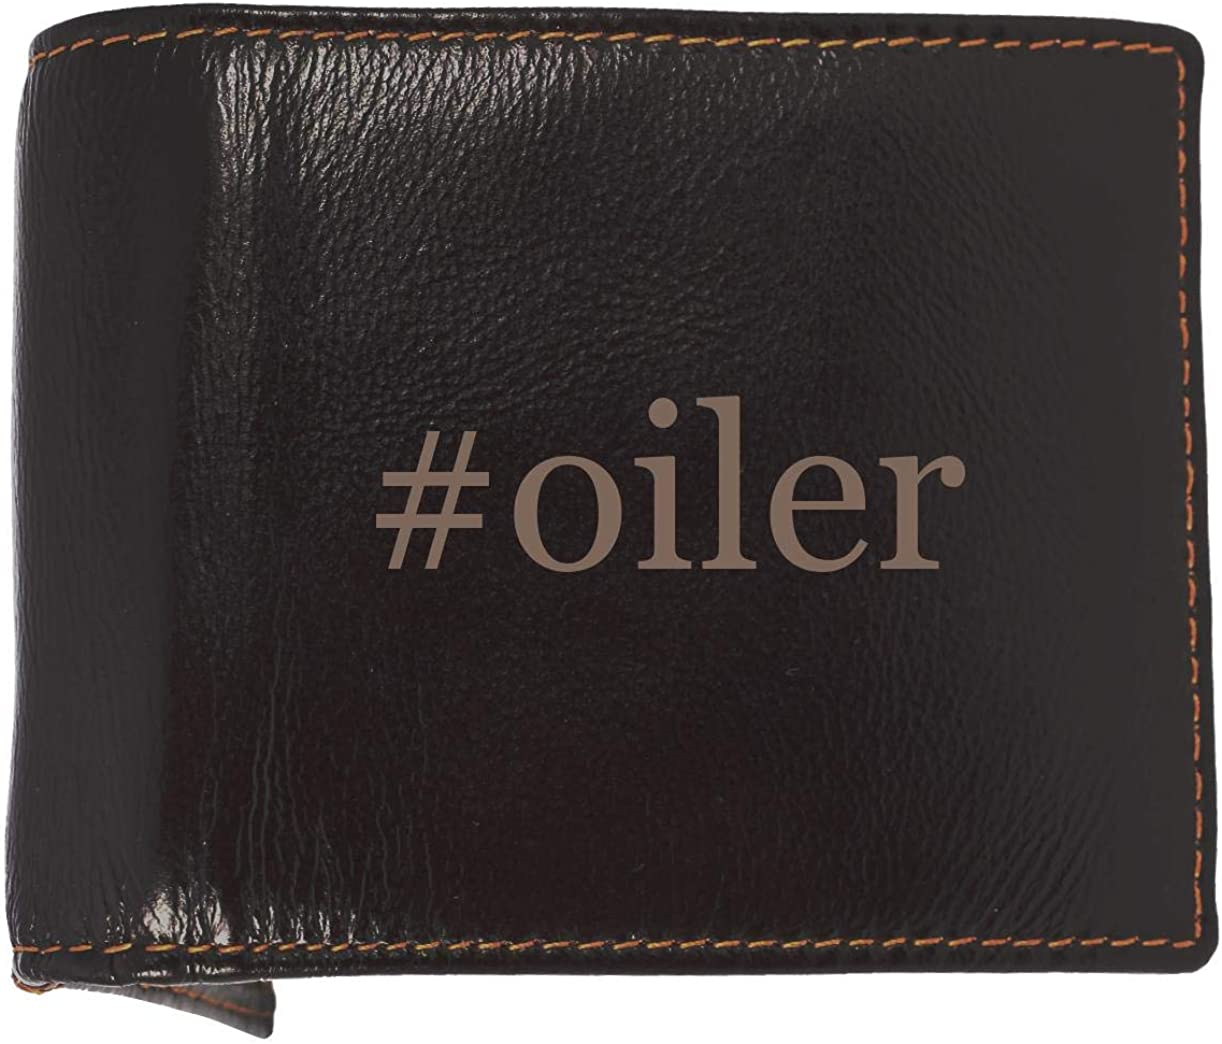 #oiler - Soft Hashtag Cowhide Genuine Engraved Bifold Leather Wallet 61cuBBRLGBL